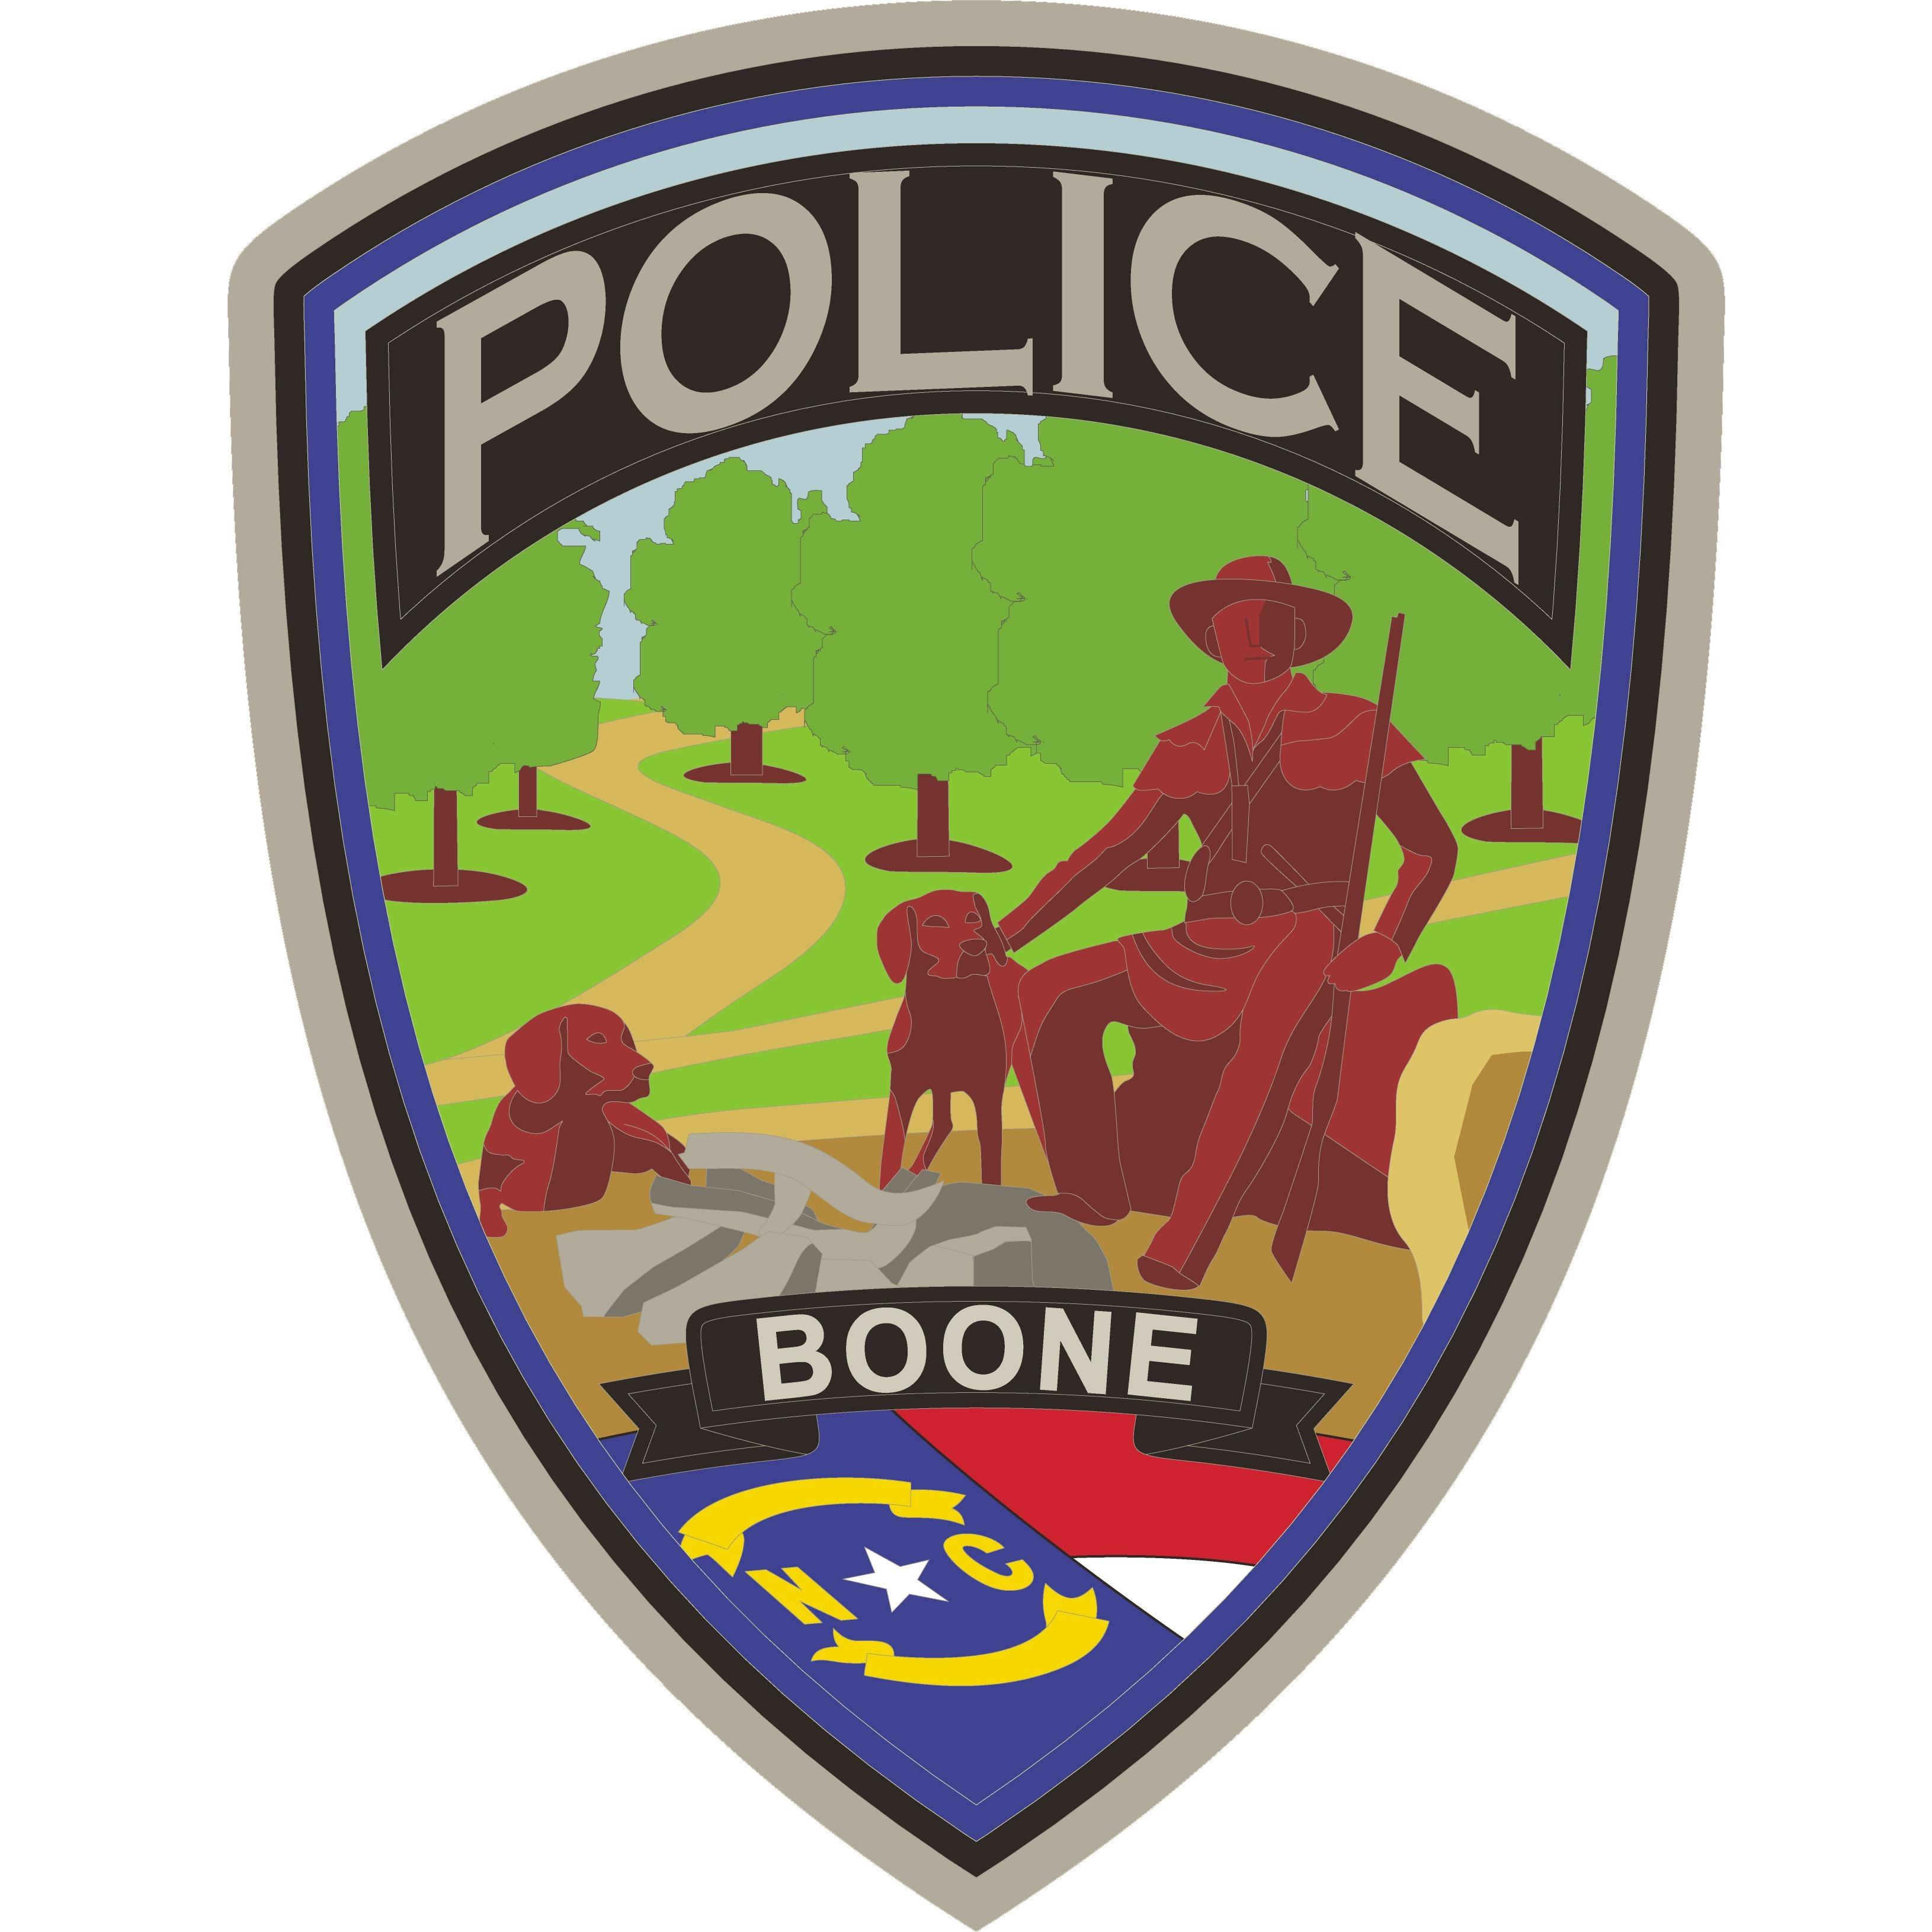 Boone NC Police Dept (@boonepolice) | Twitter